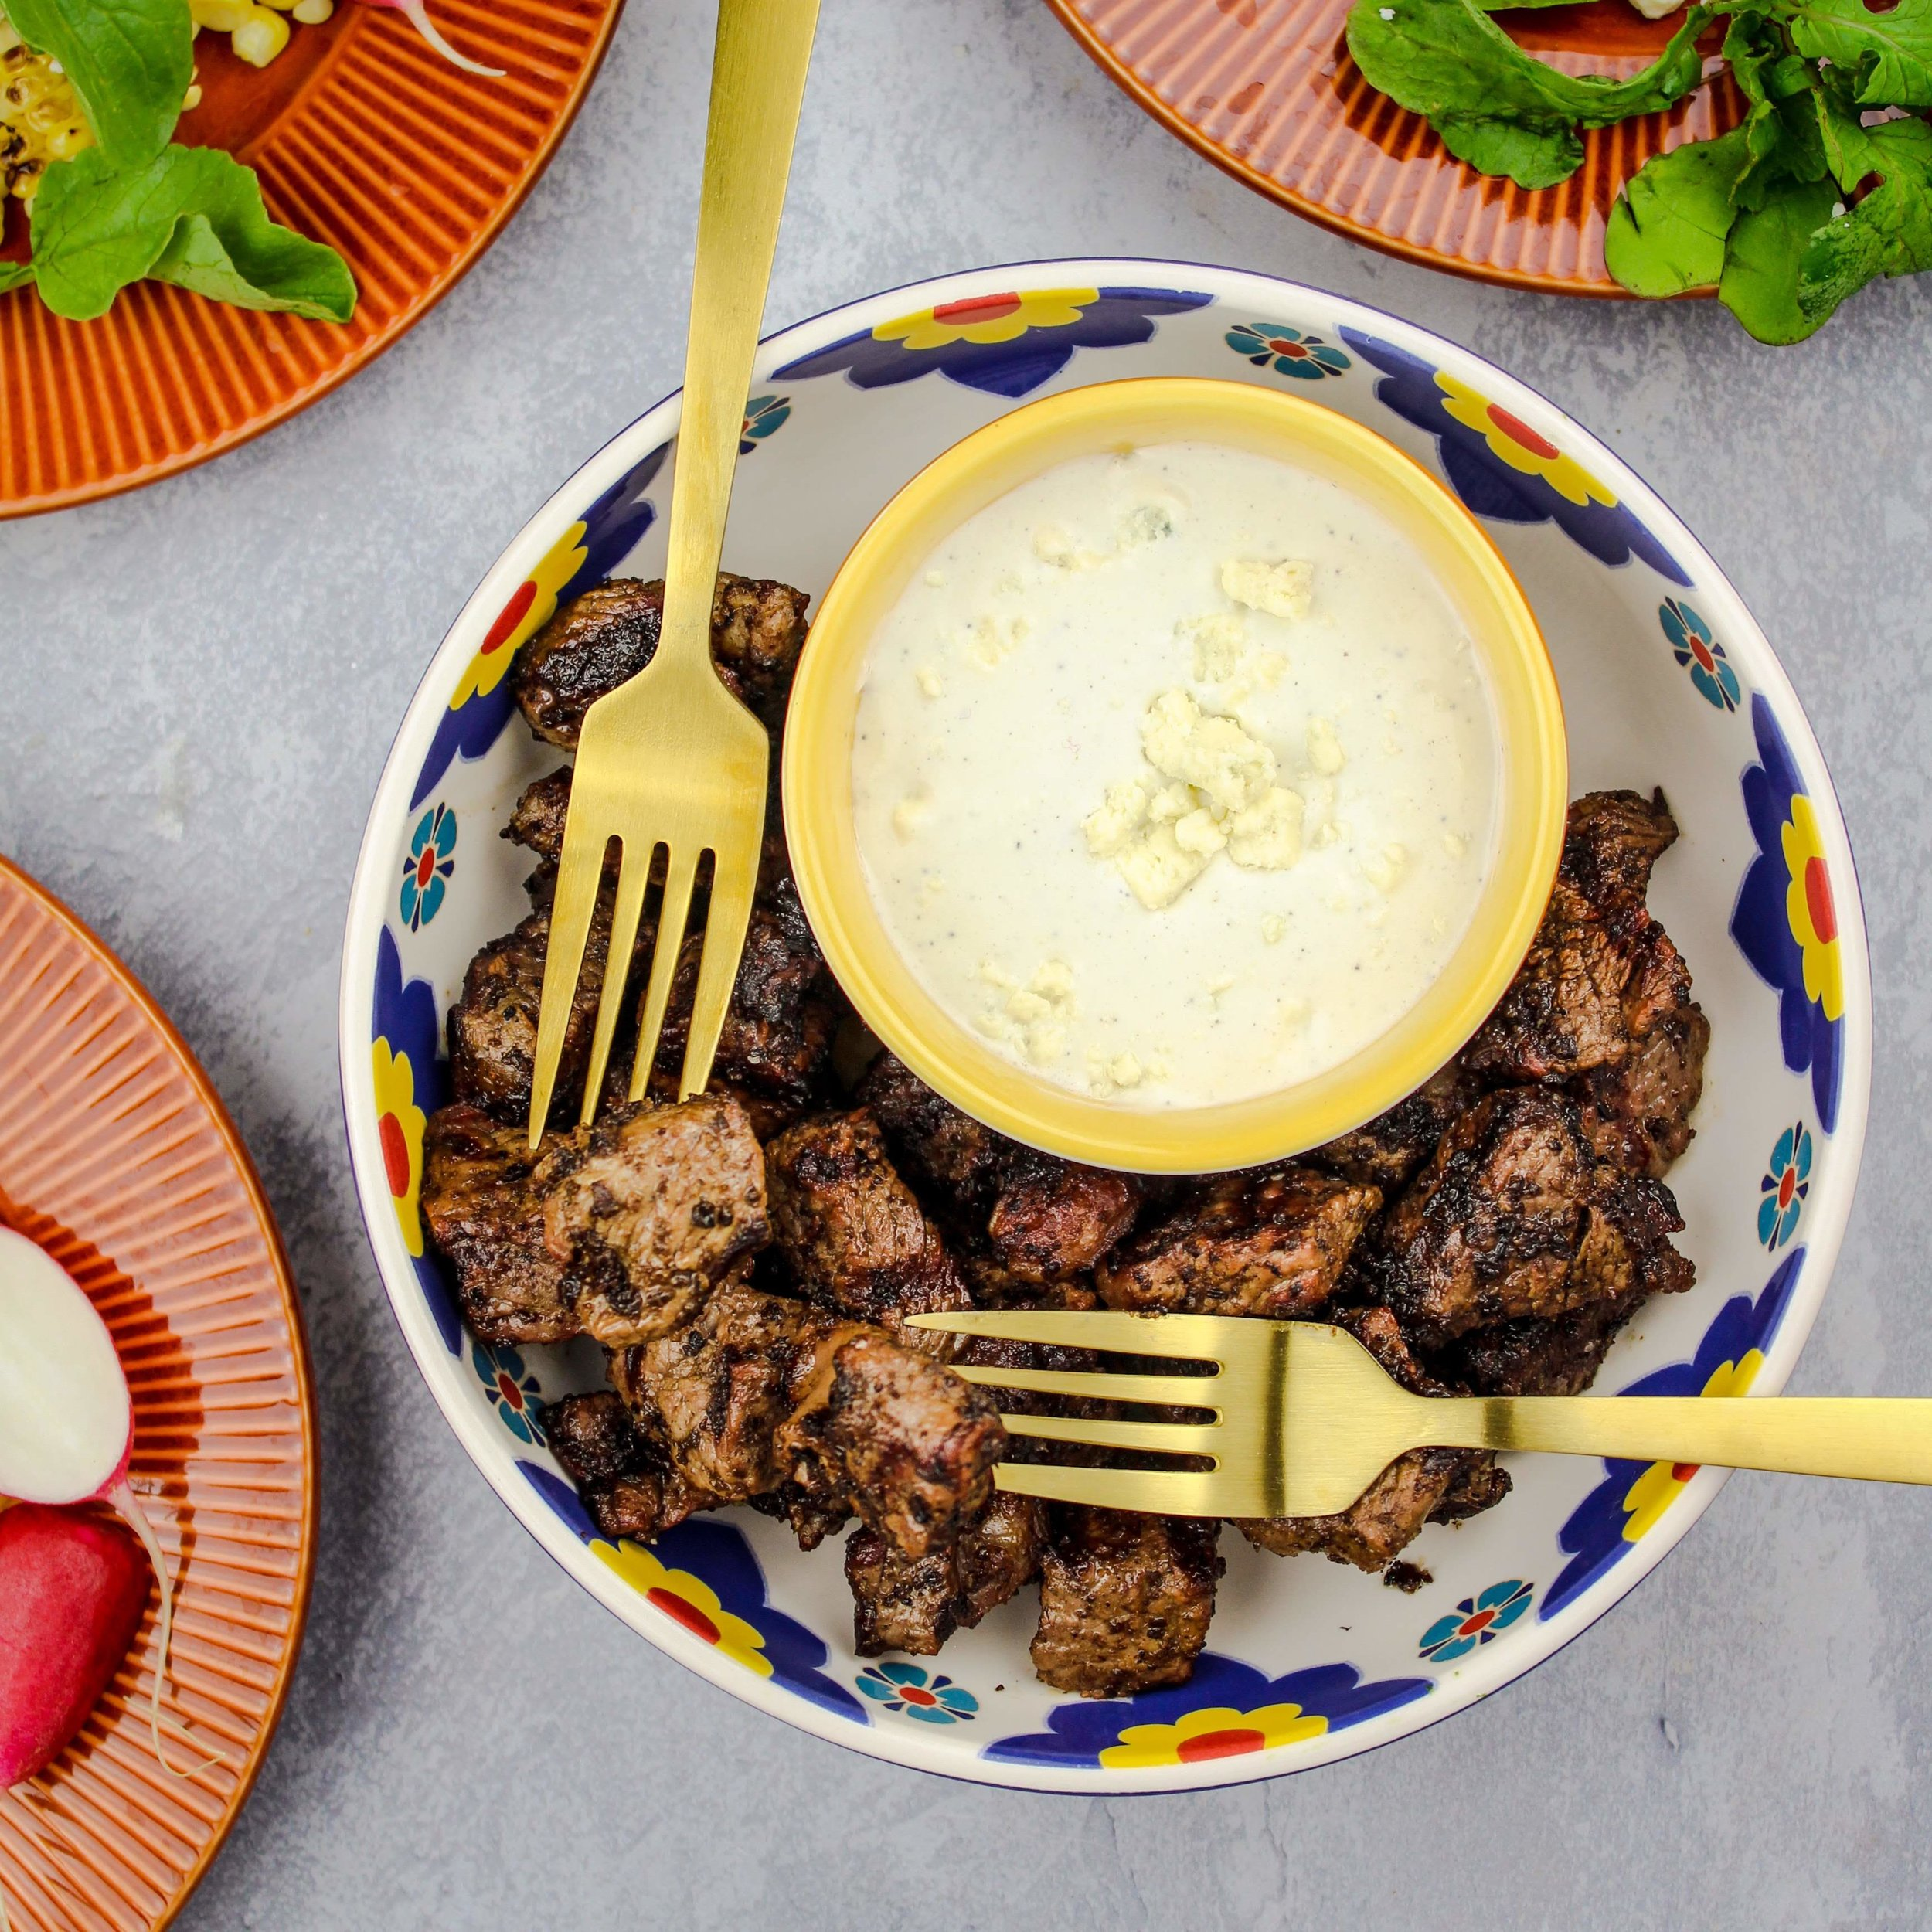 Grilled Ribeye Steak Bites with butter and gorgonzola